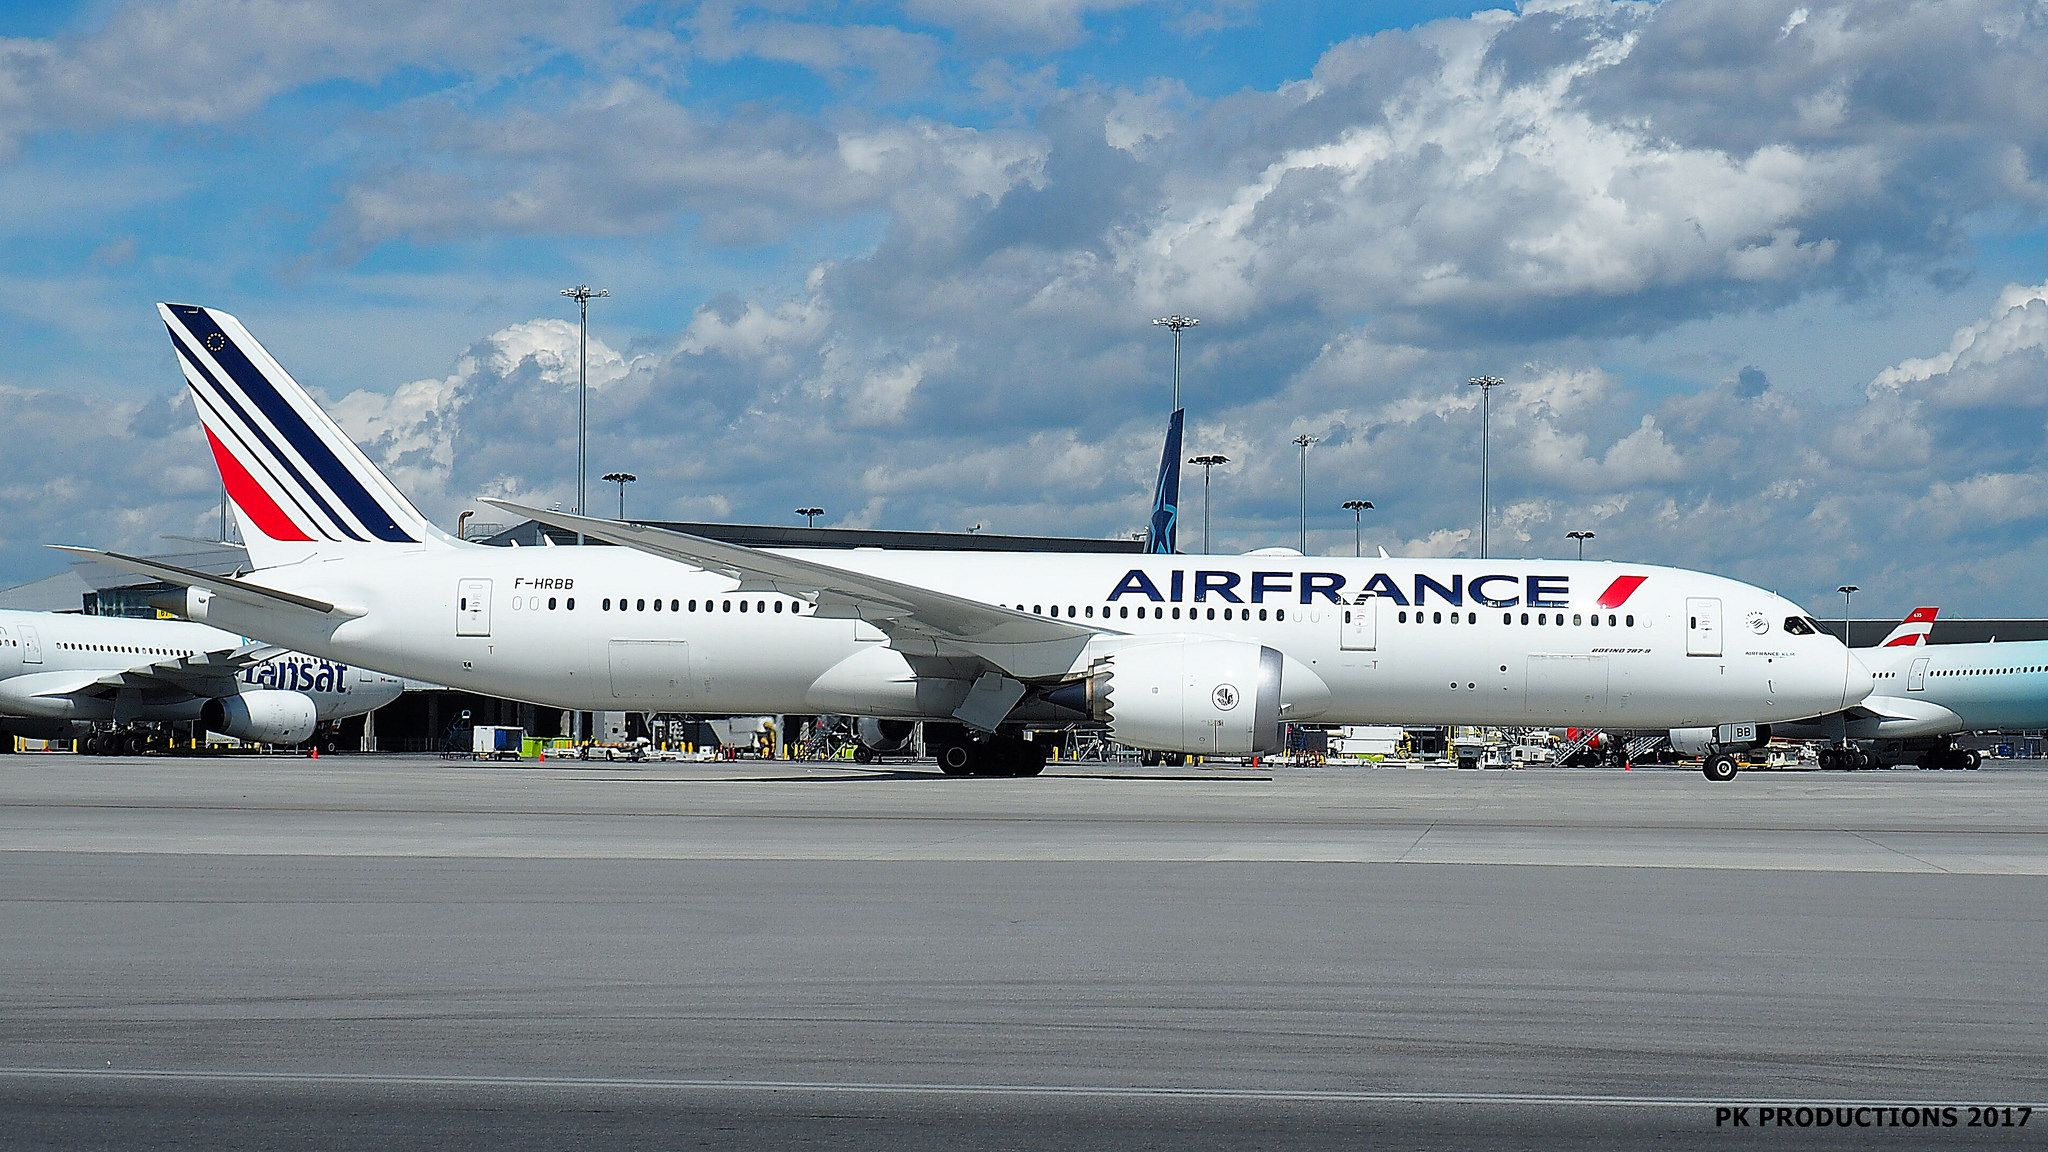 P7030302 TRUDEAU Air france, France country, Boeing 787